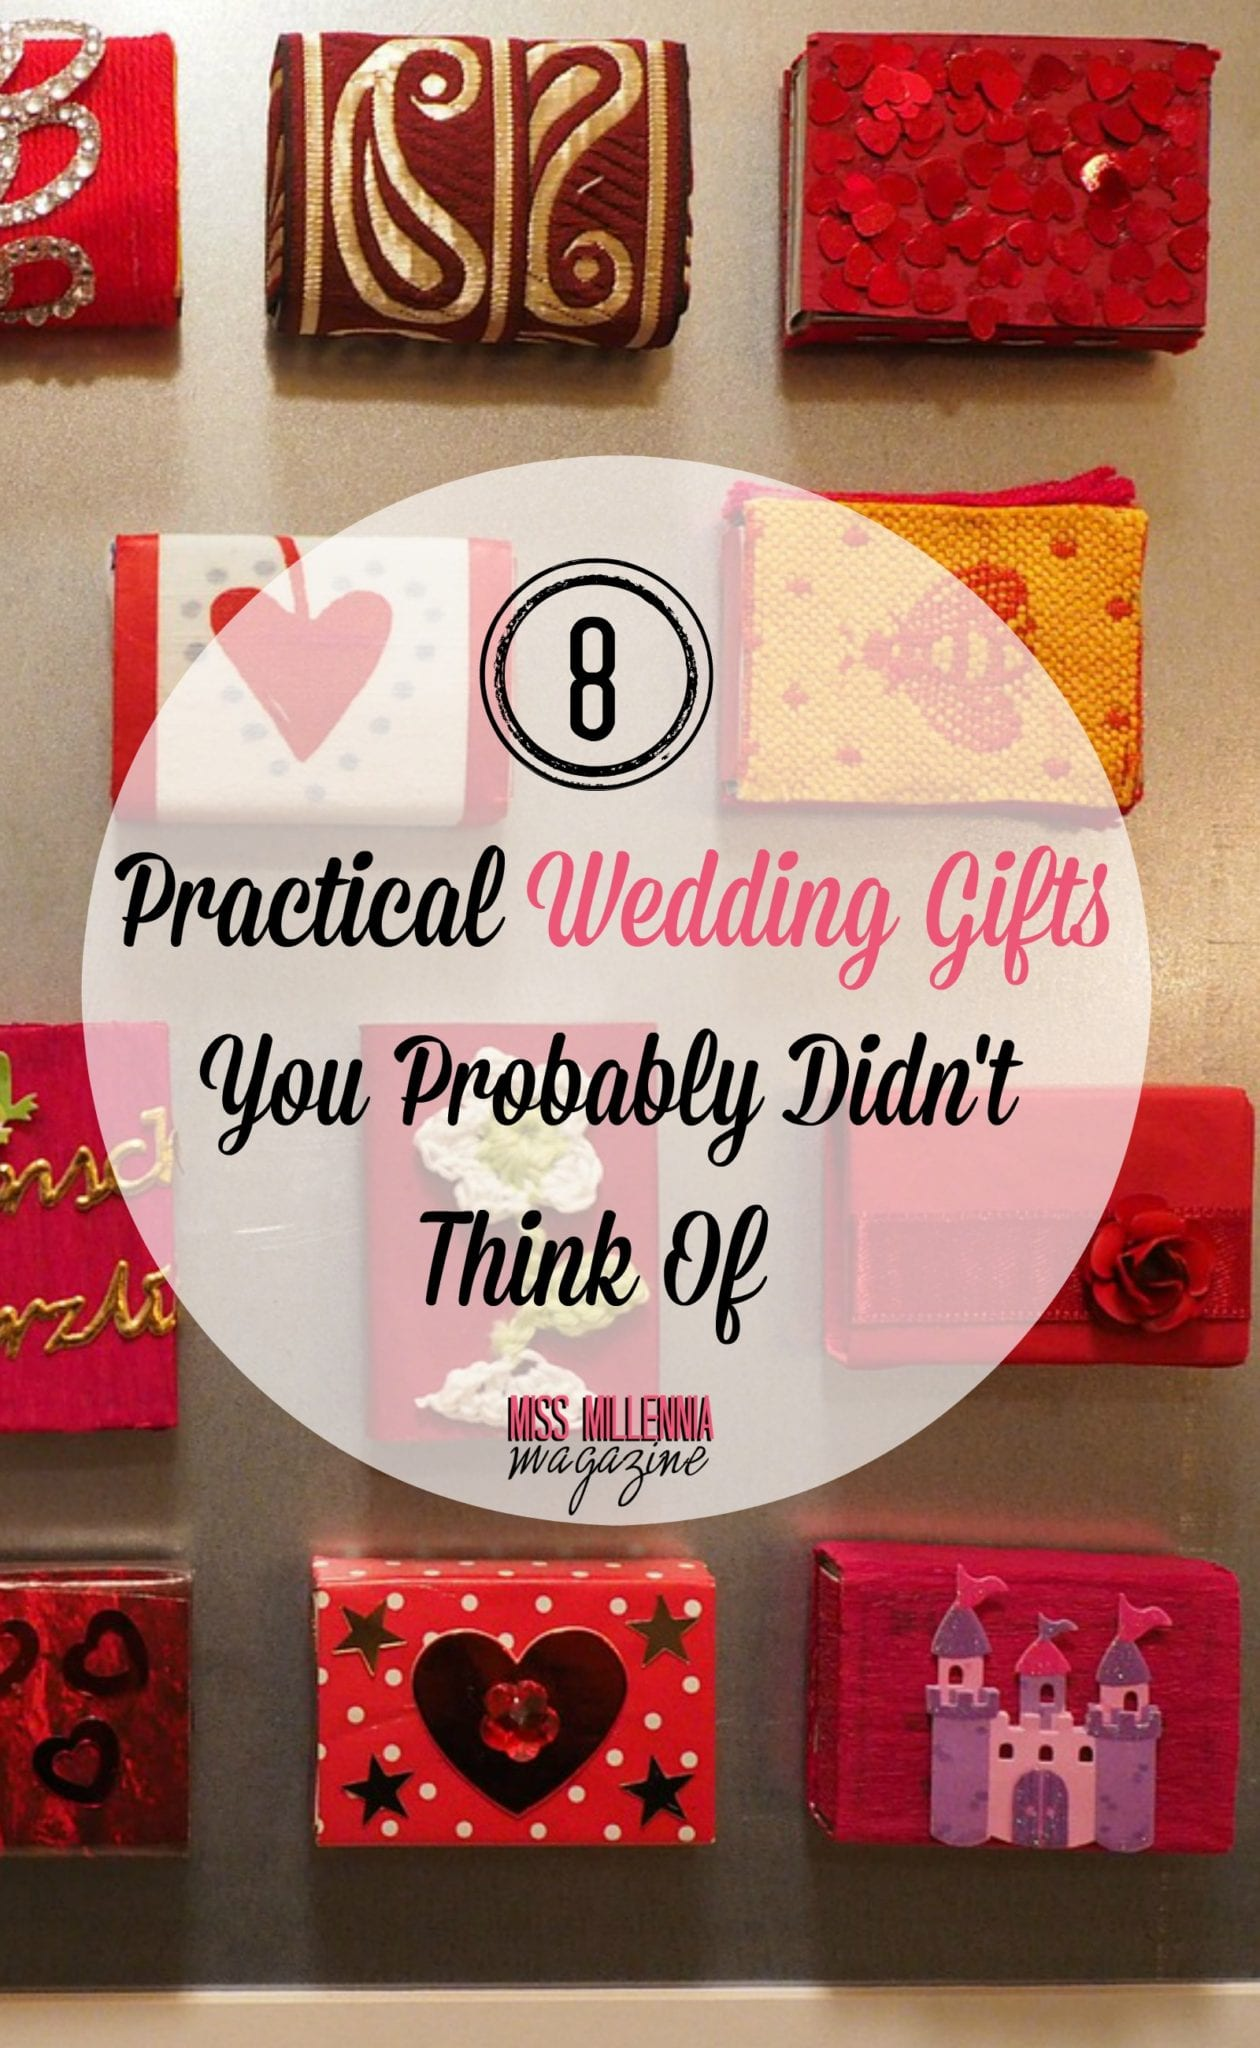 8-practical-wedding-gifts-you-probably-didnt-think-of